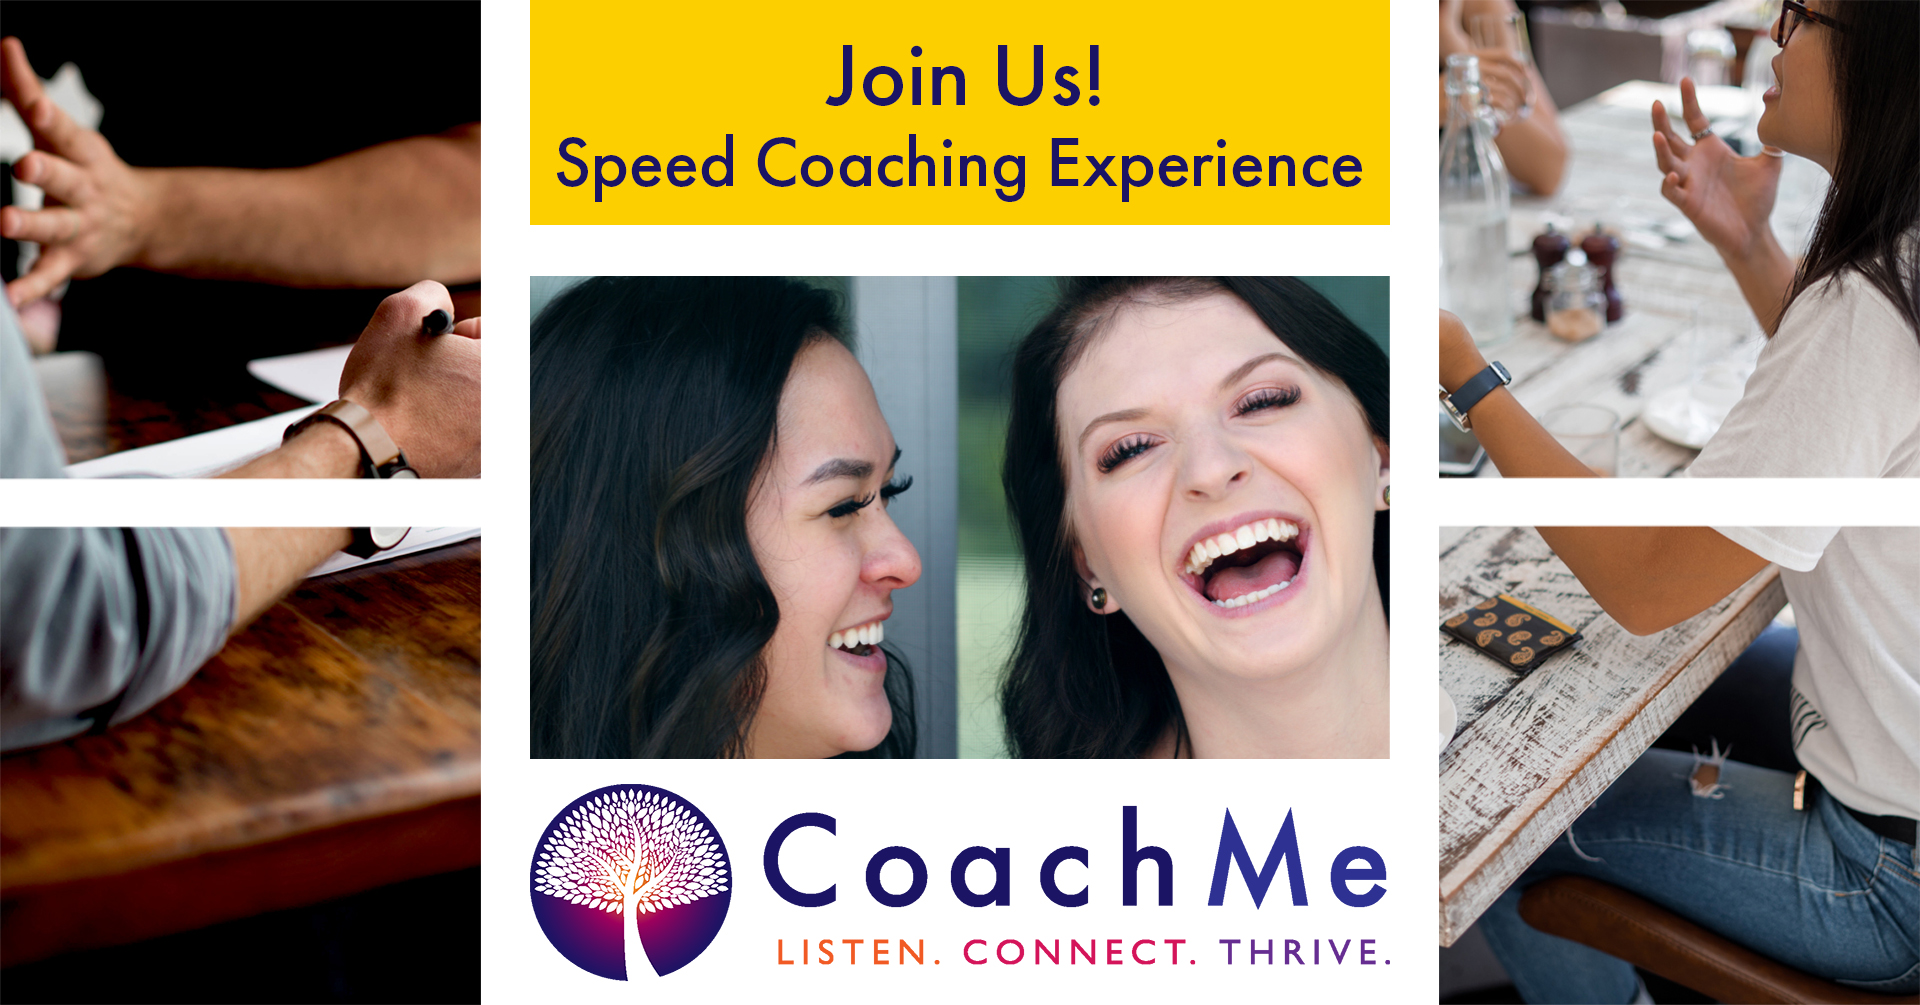 Coaching Workshop in Vancouver - Coaching Event Speed Coaching Experience - CoachMe Vancouver